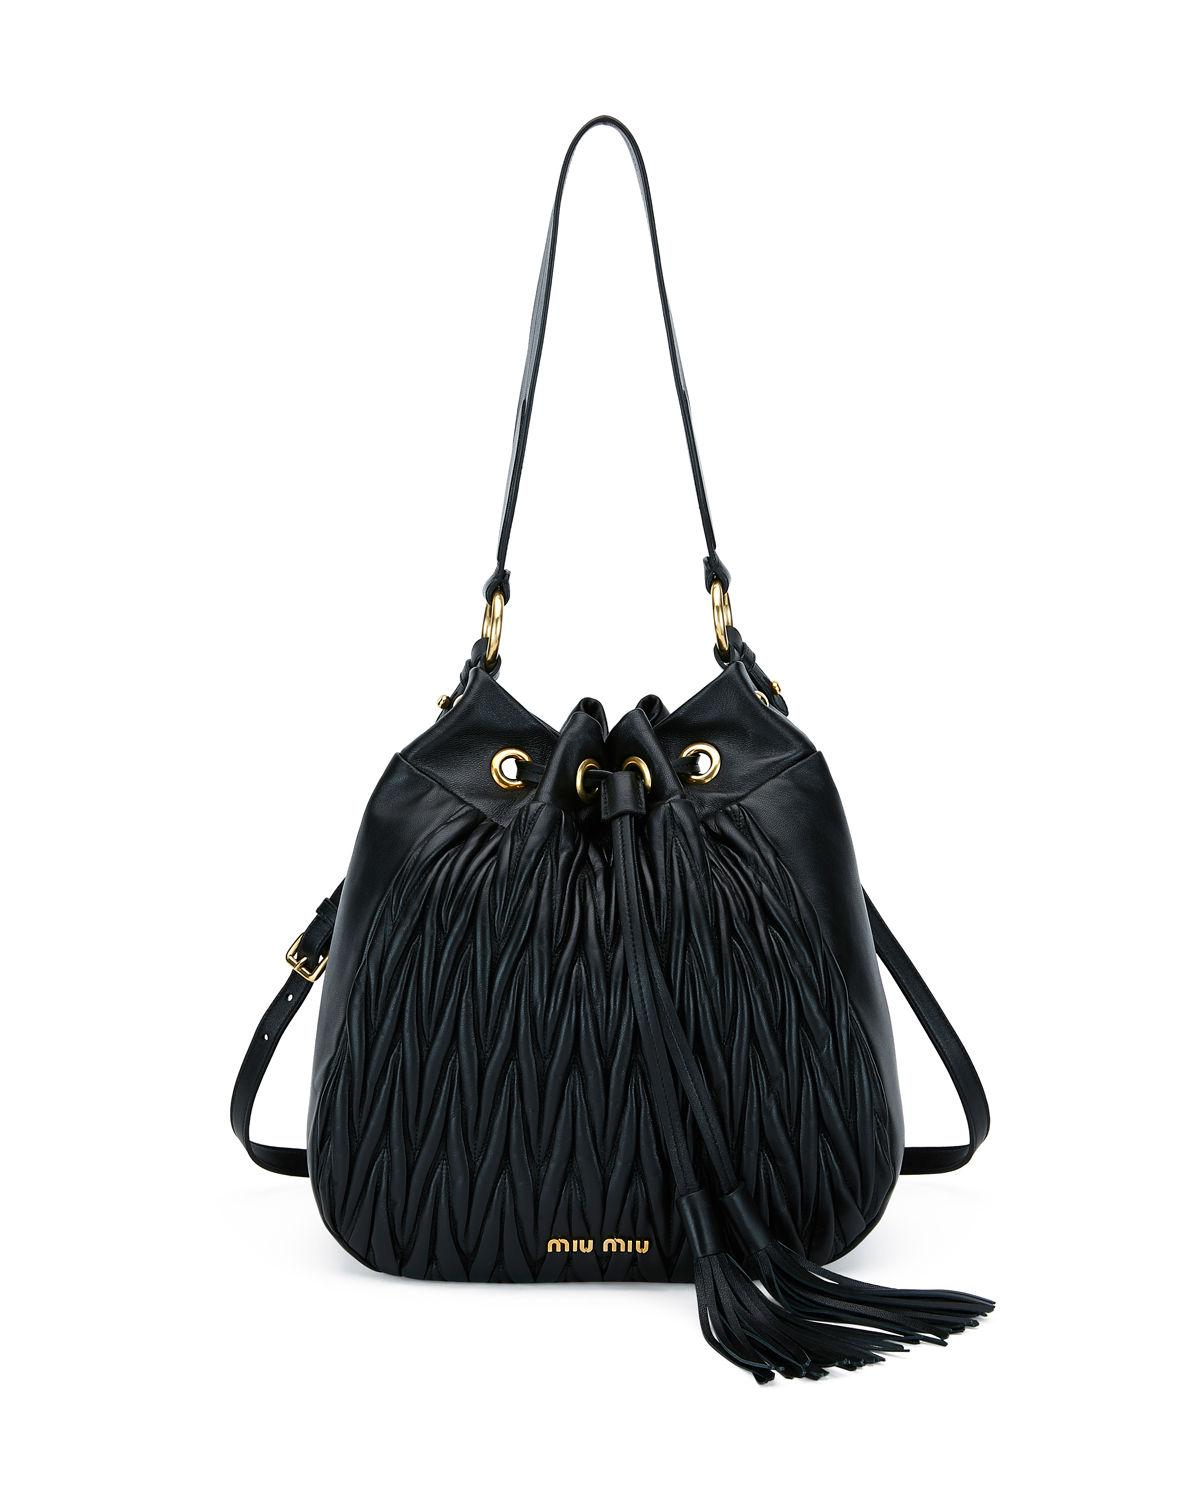 27848e814f4 Miu Miu MatelassÉ Leather Shoulder Bag In Black